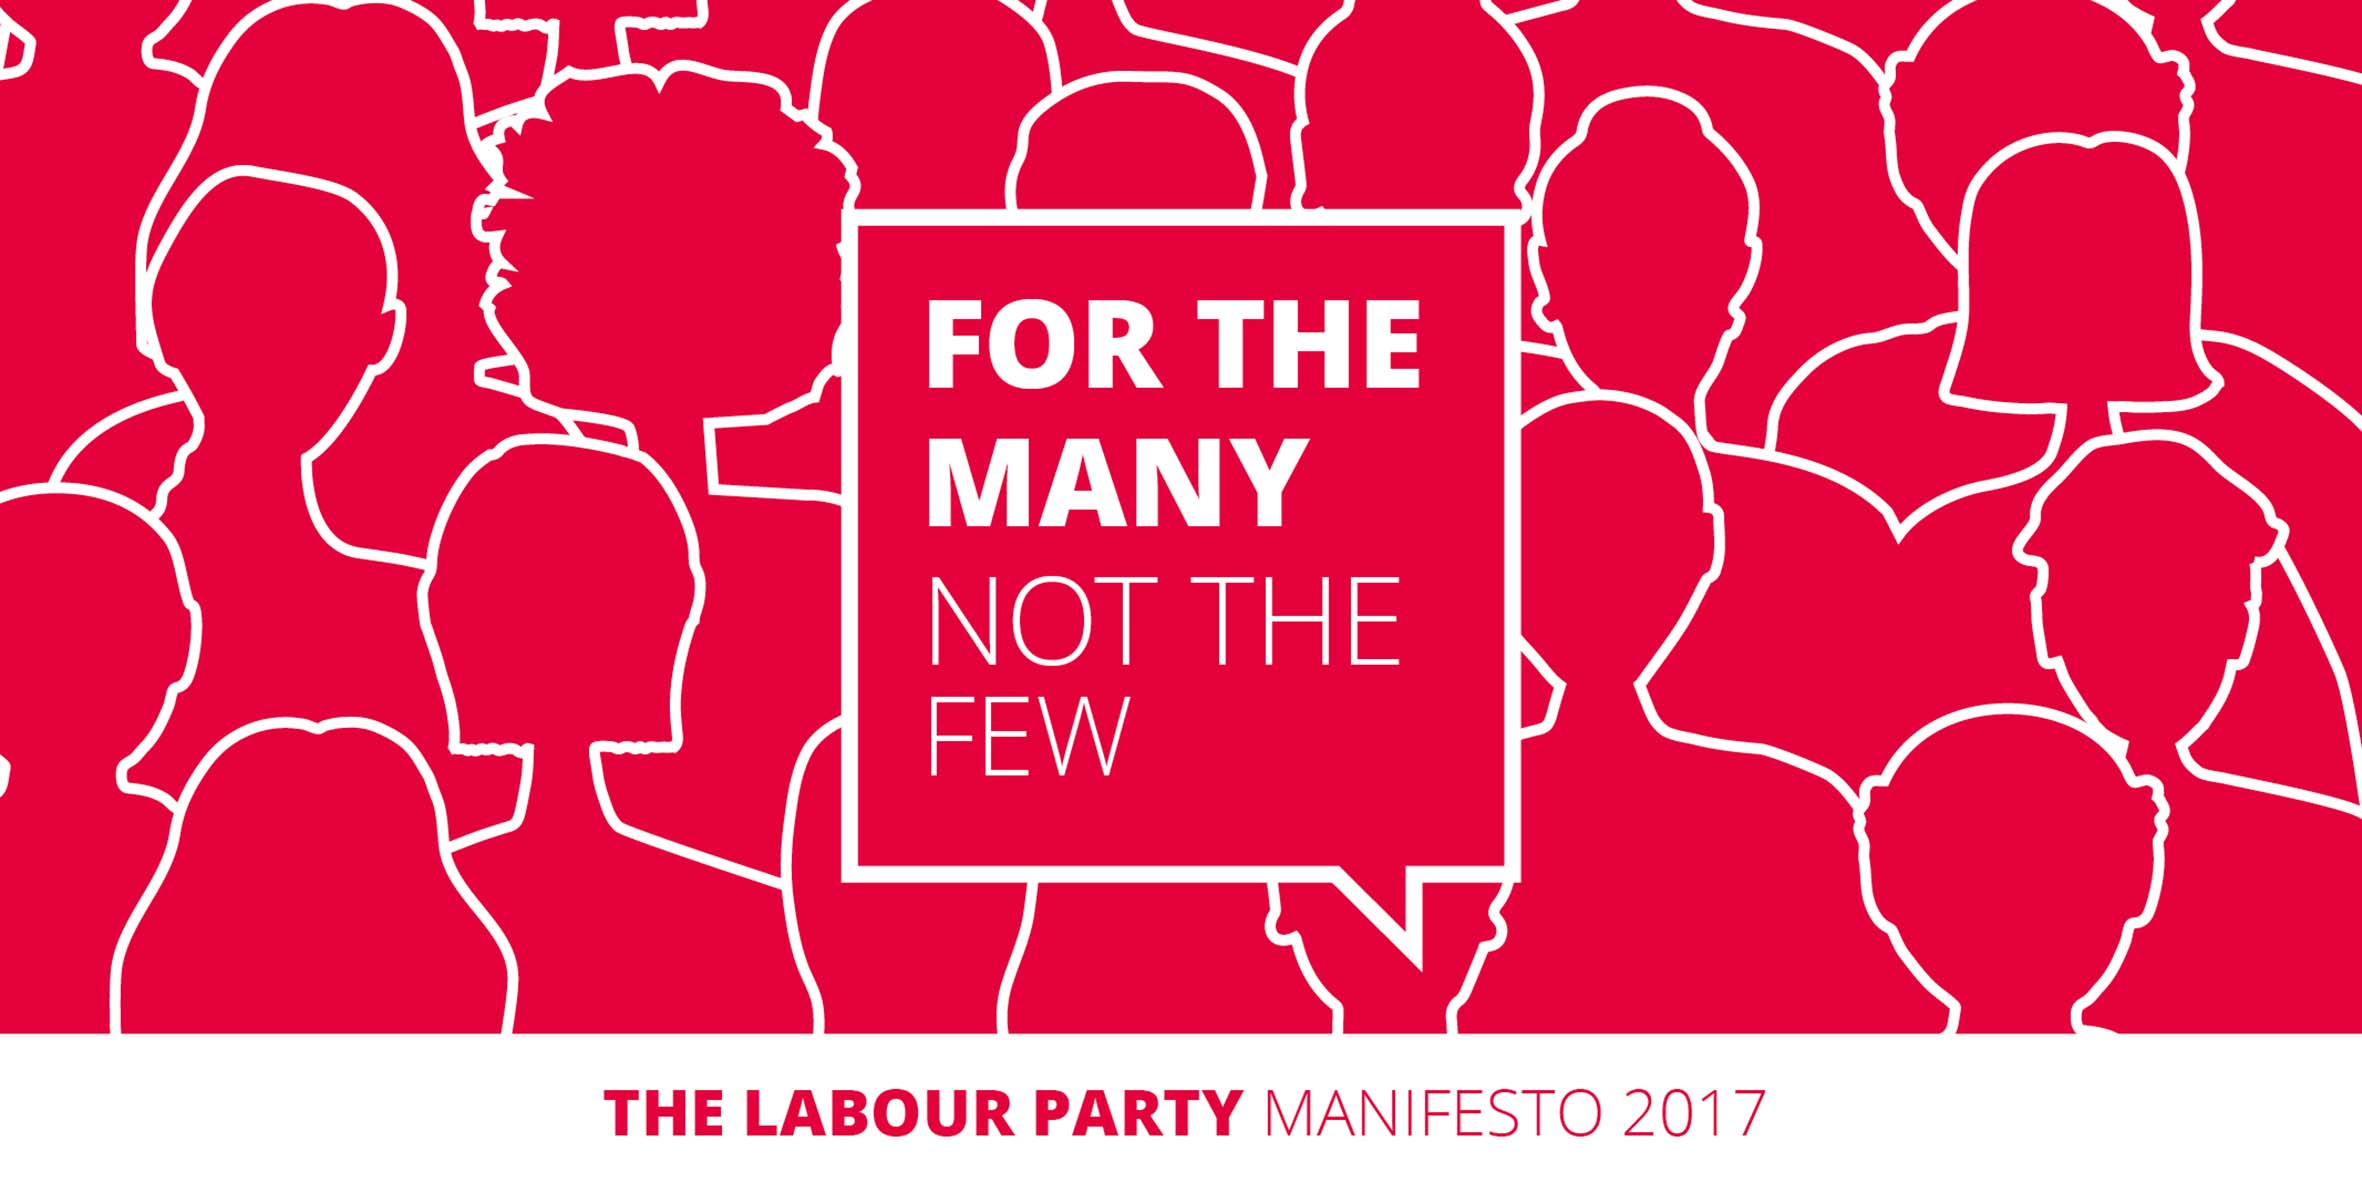 Manifesto Image: Who Should Dads Vote For? The 2017 Party Manifestos